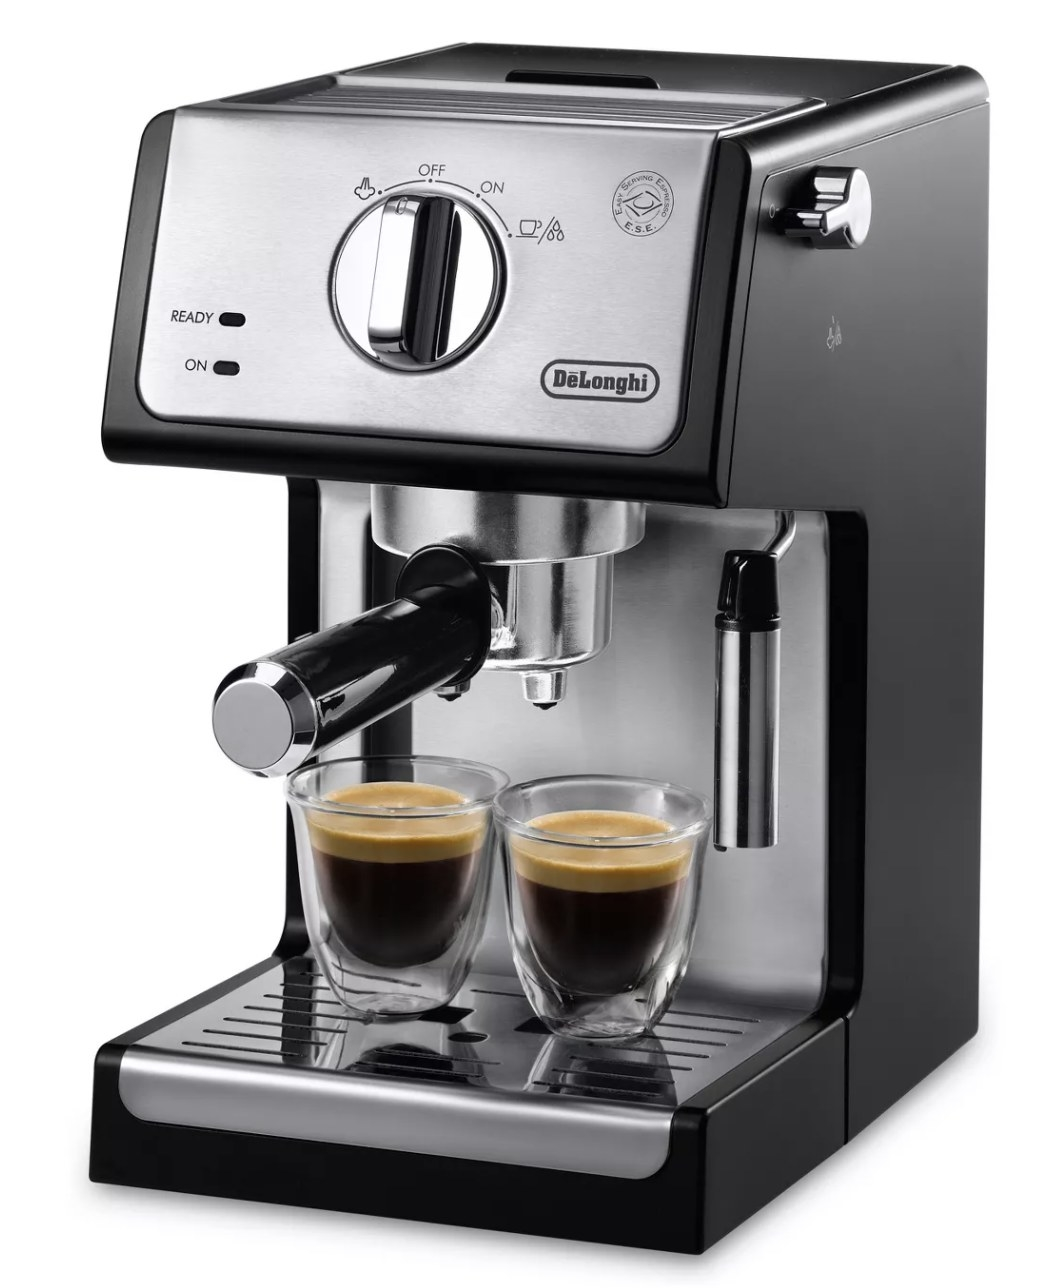 a stainless steel and black espresso maker with two glasses of espresso